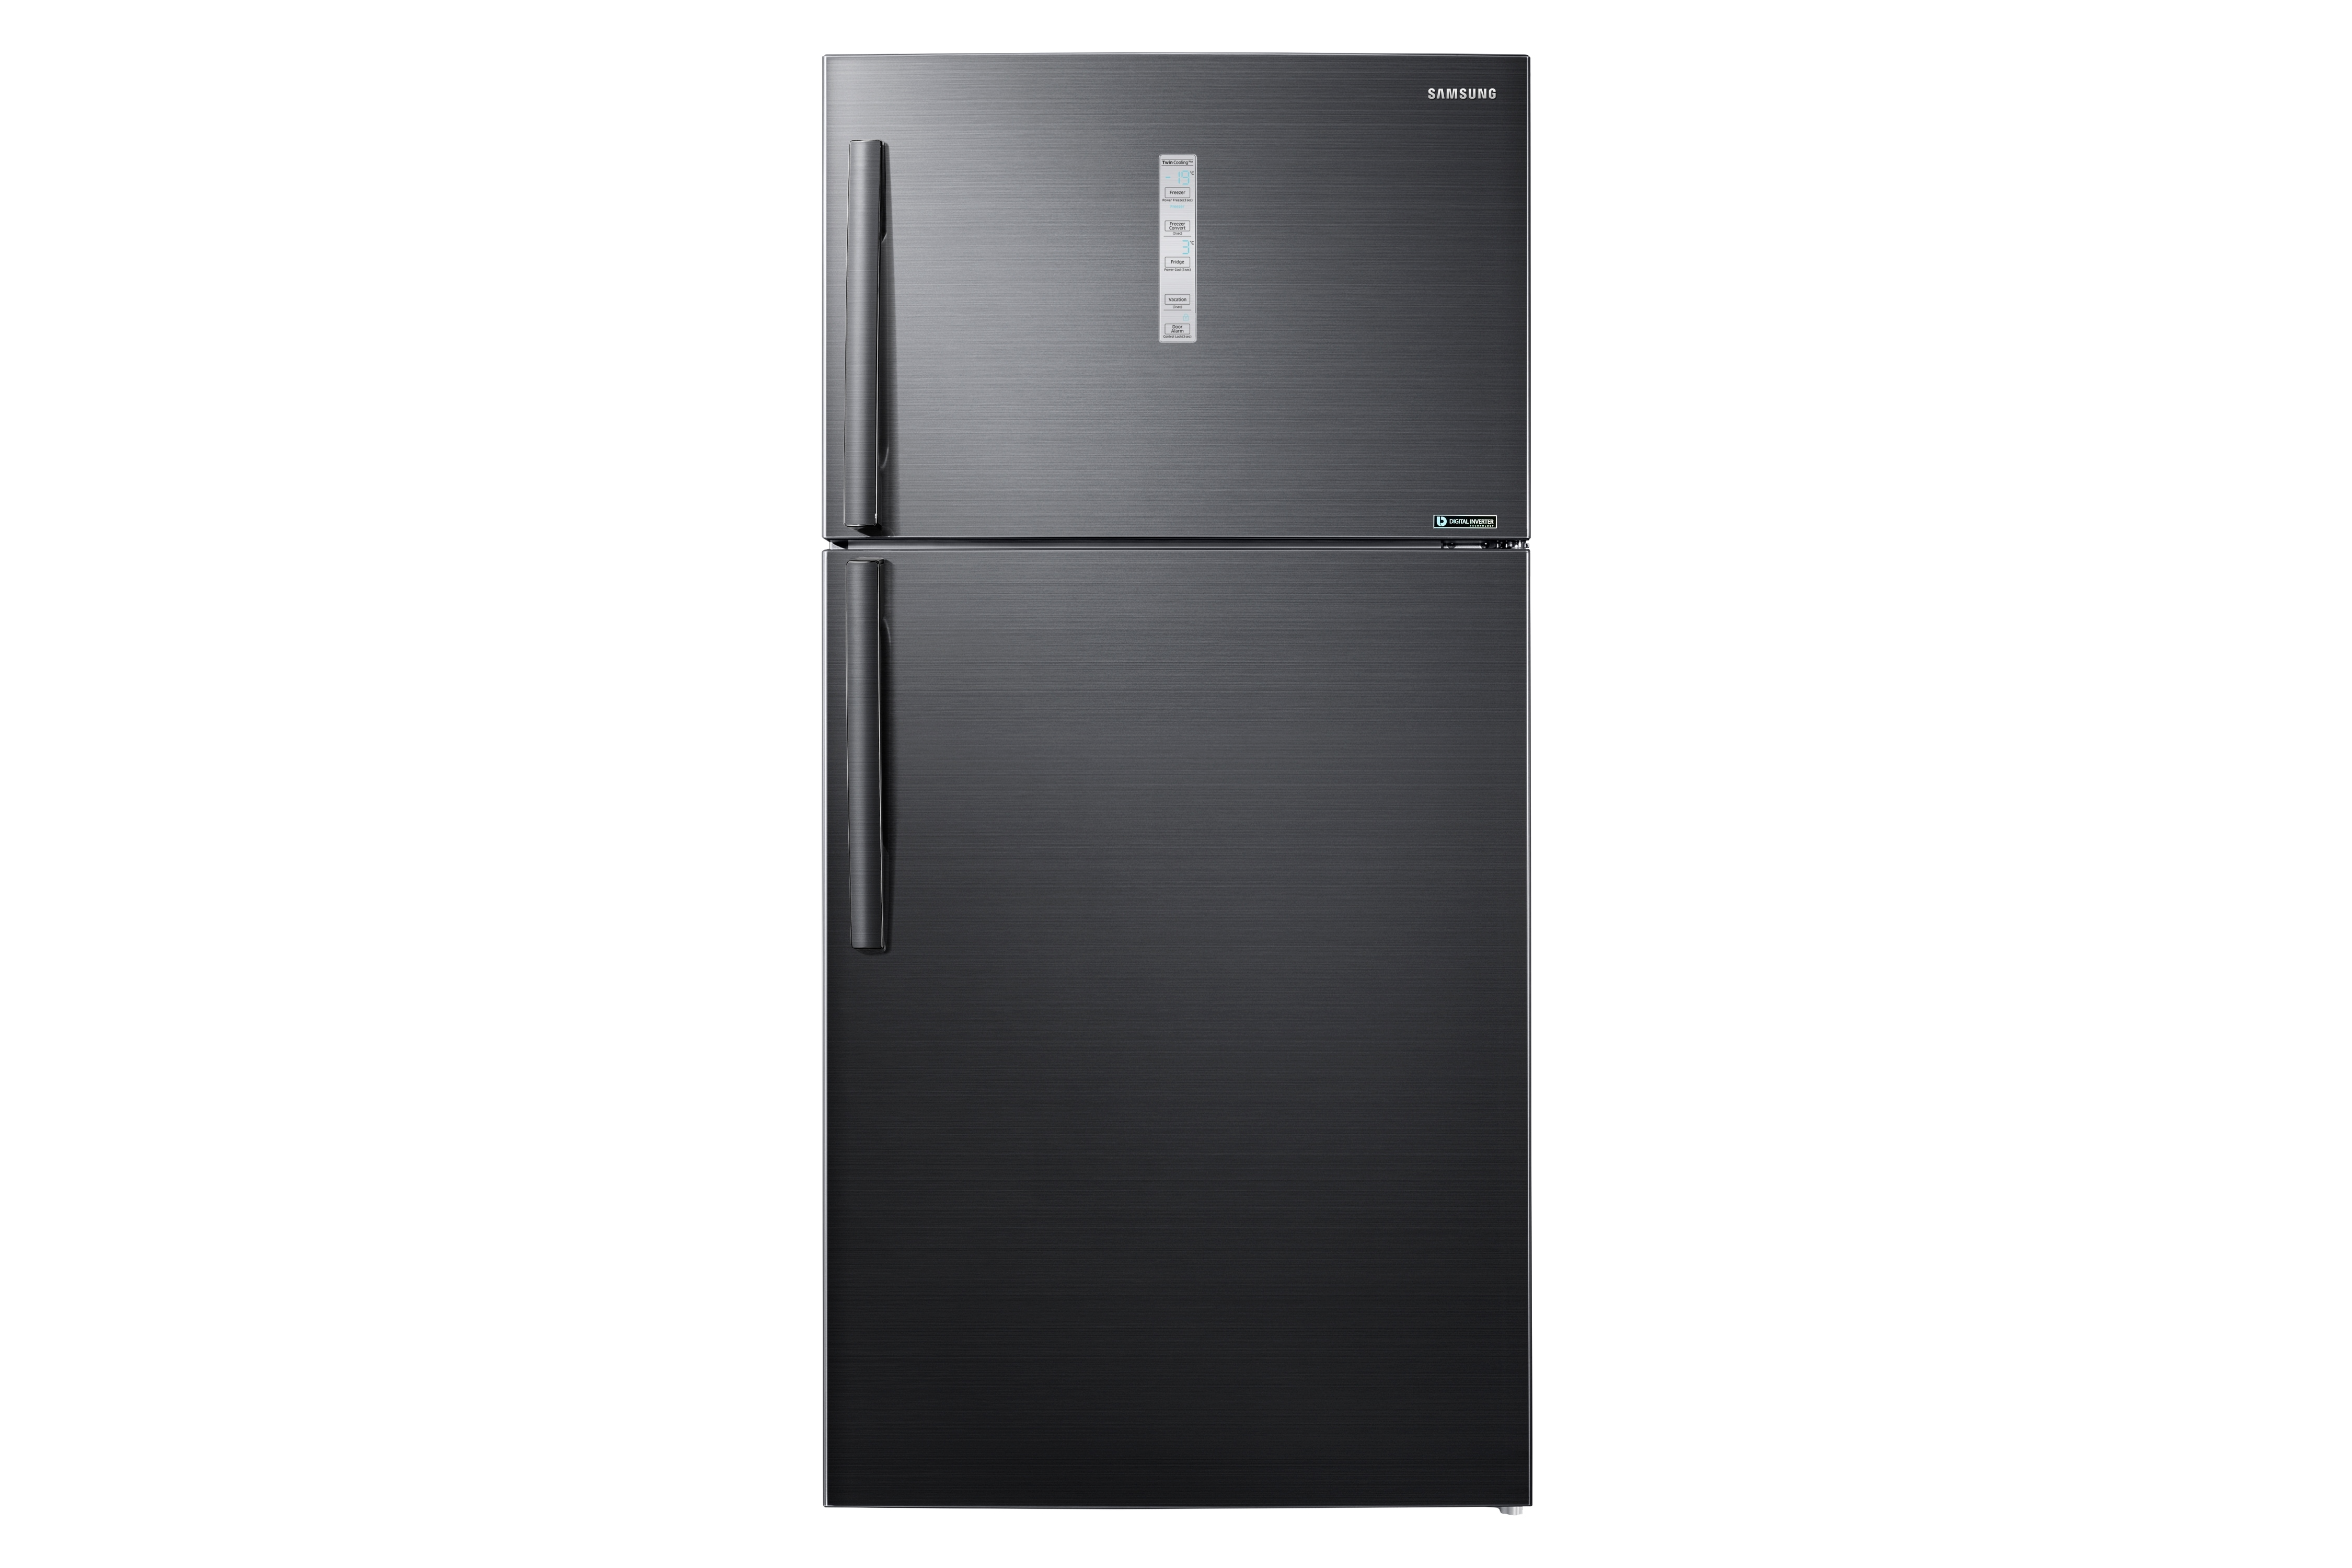 629 Litre Top Freezer with Twin Cooling Plus™ (SR627BCTC)